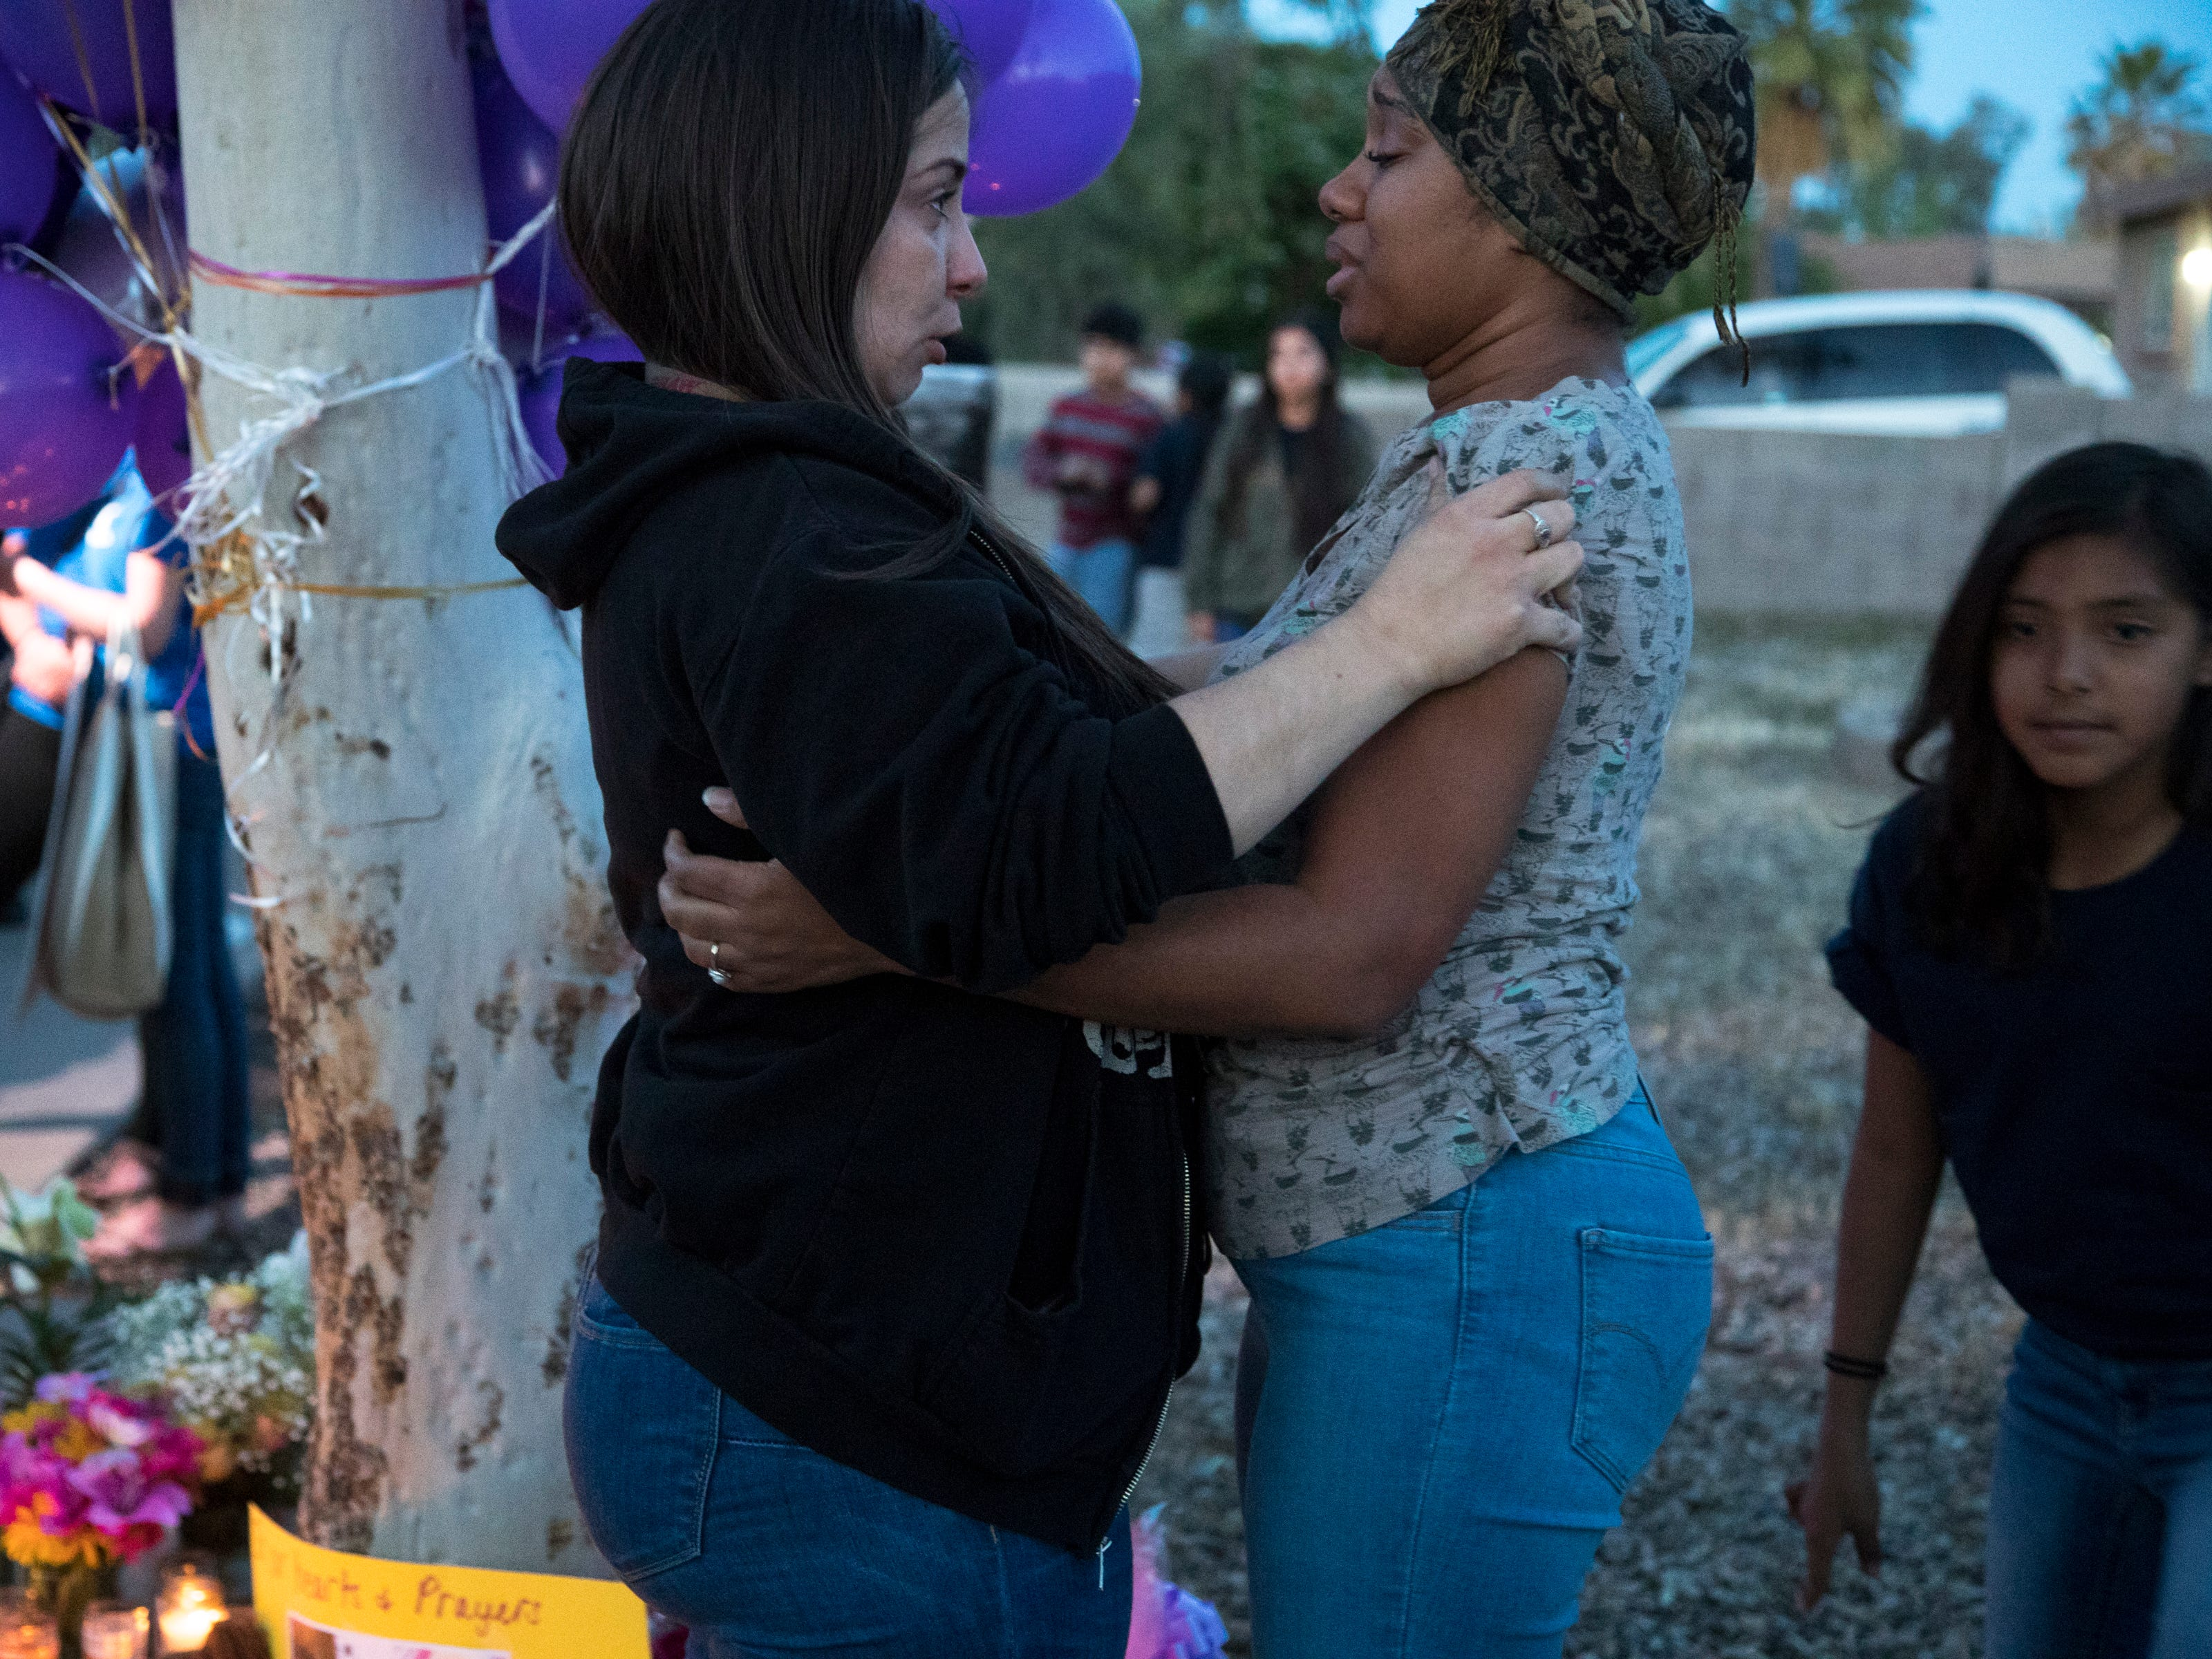 Taniesha Brown (right, Summer's mom) is comforted during a vigil for Summer Bell Brown on April 5, 2019.